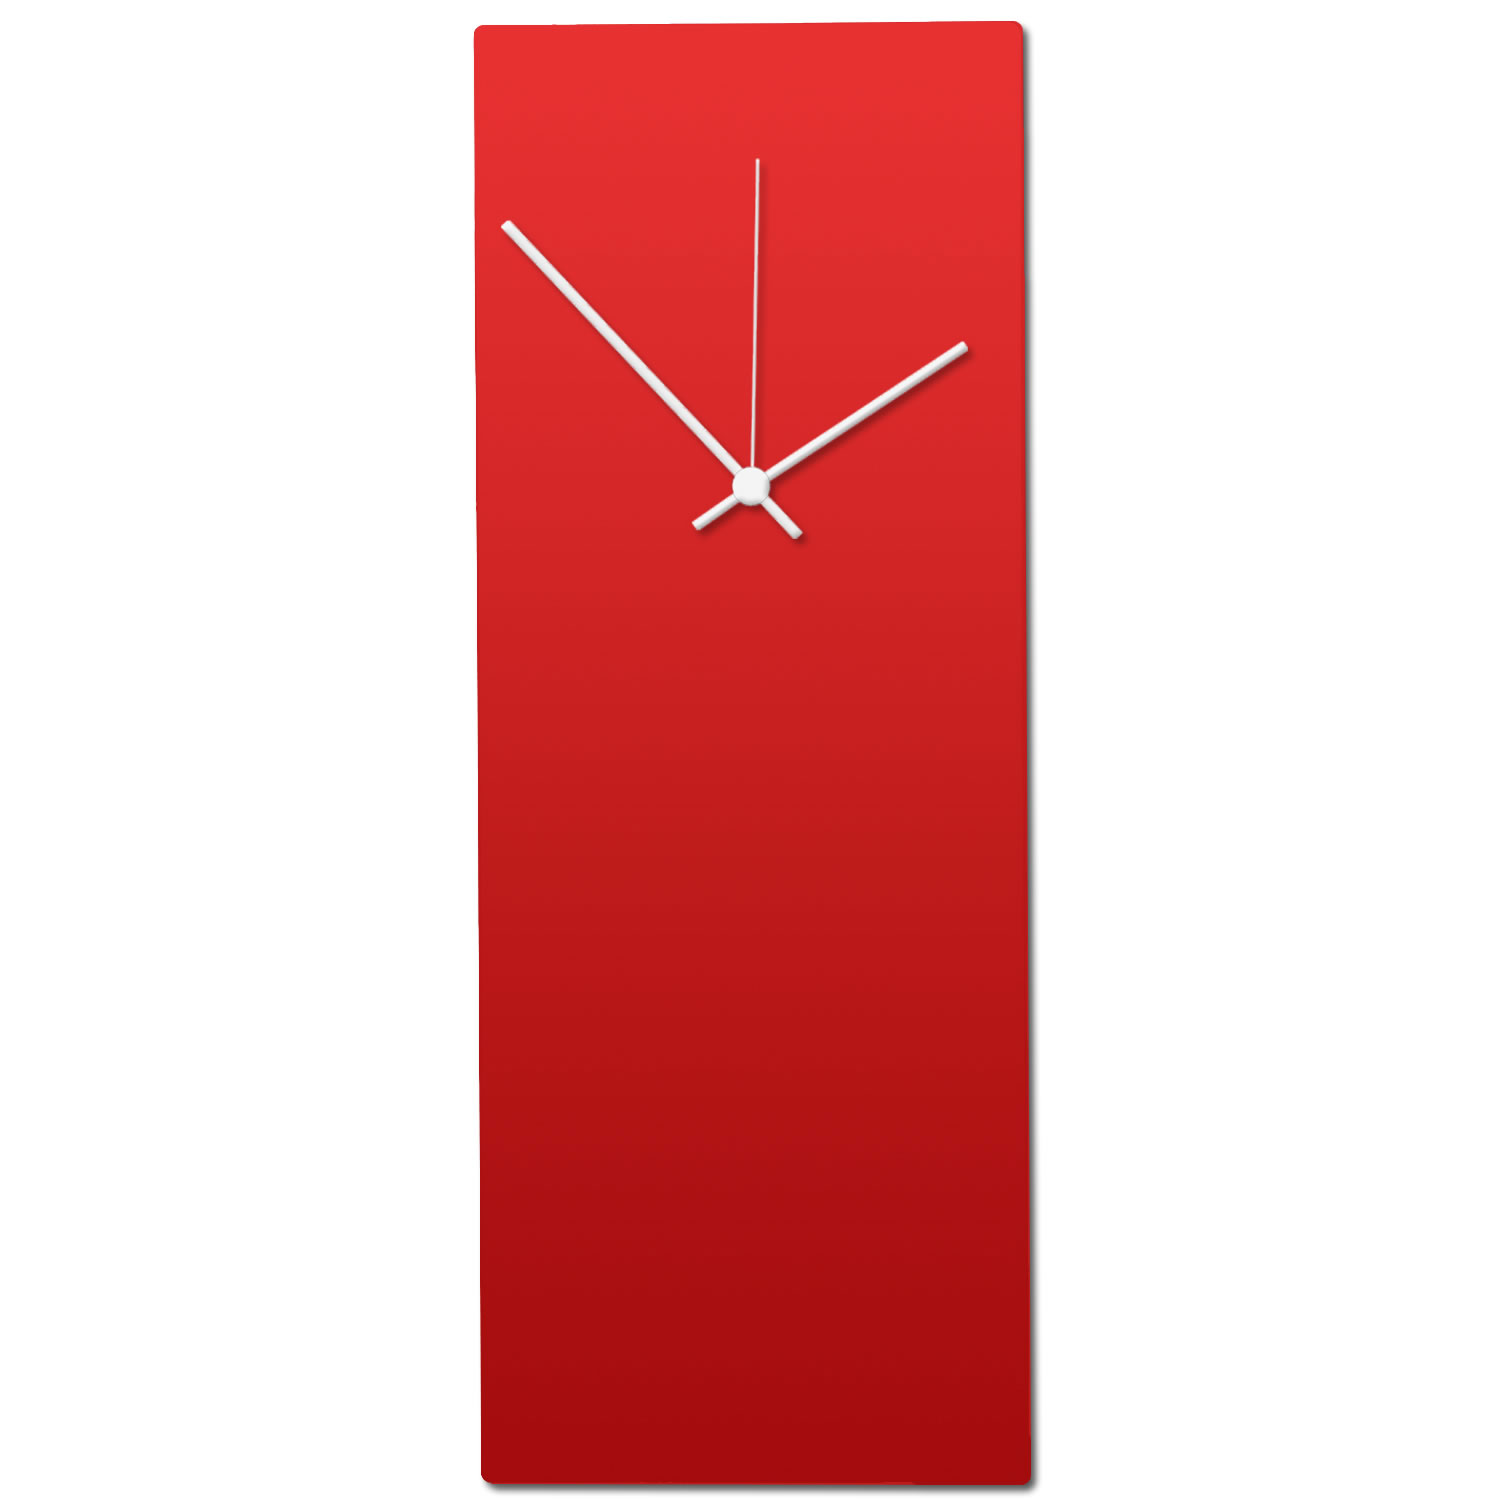 Redout White Clock - Minimalist Red Wall Clock